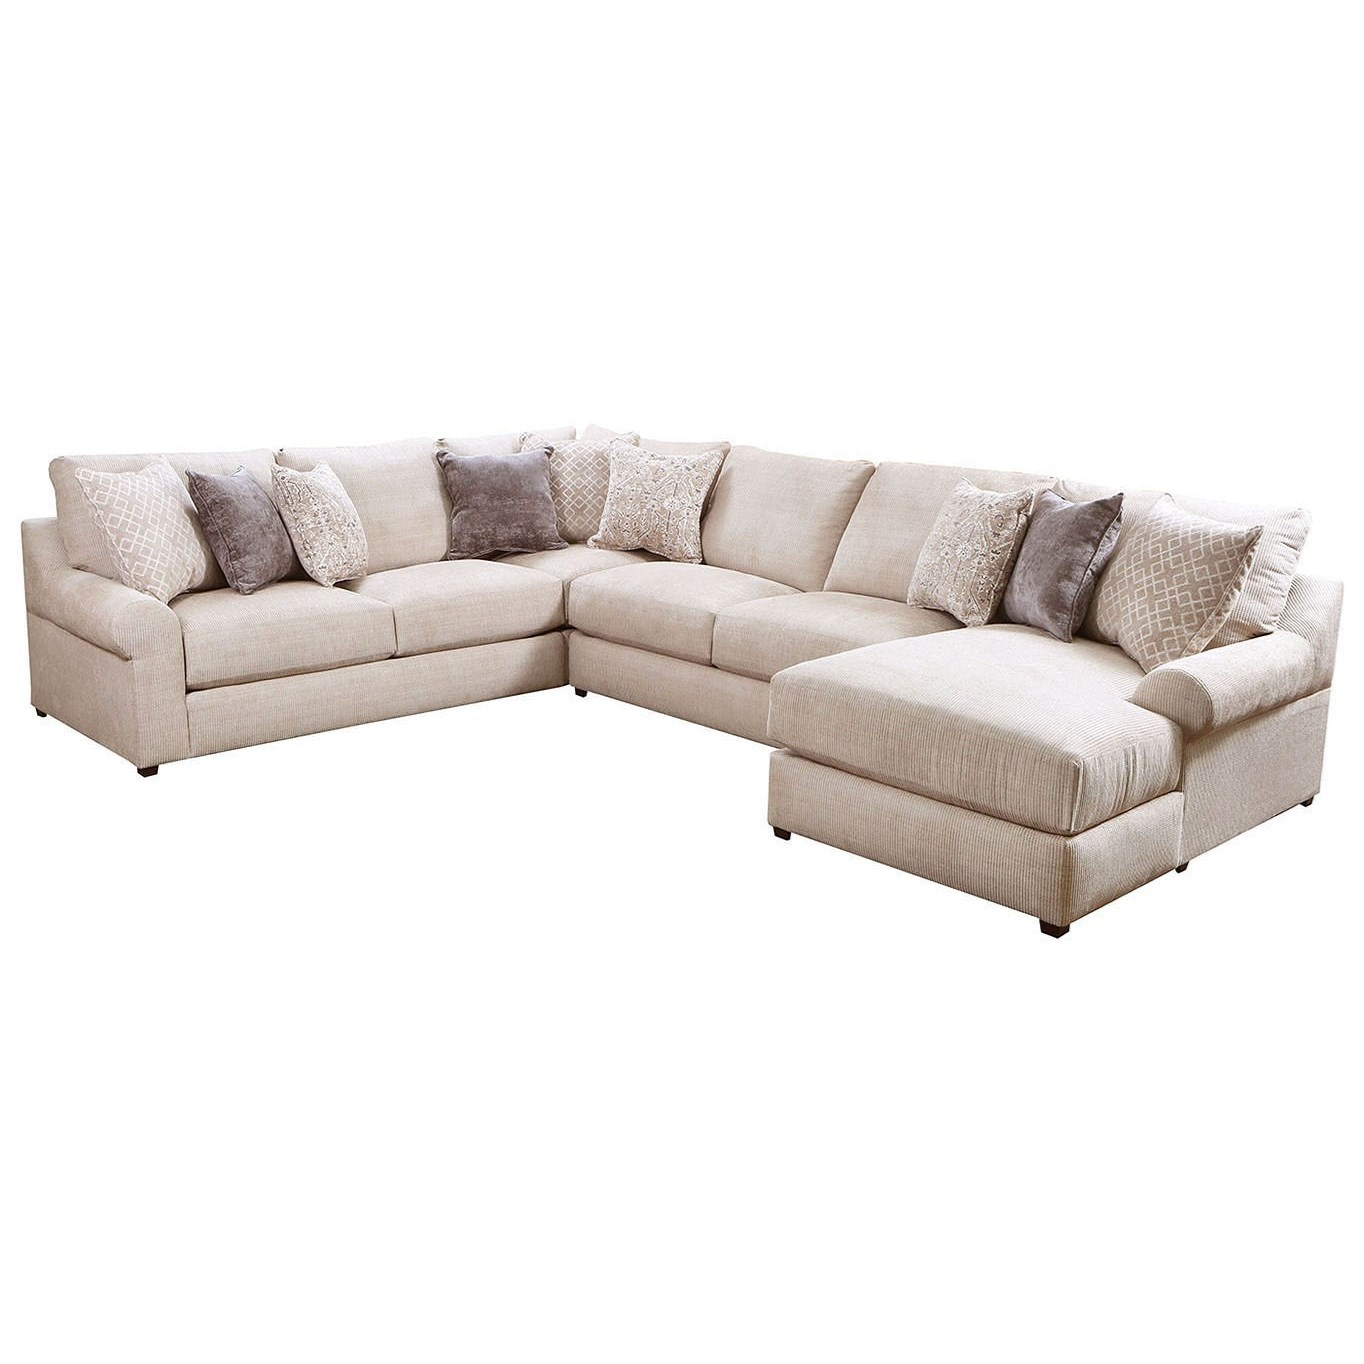 9906 4-Piece Sectional by Simmons Upholstery at Dunk & Bright Furniture